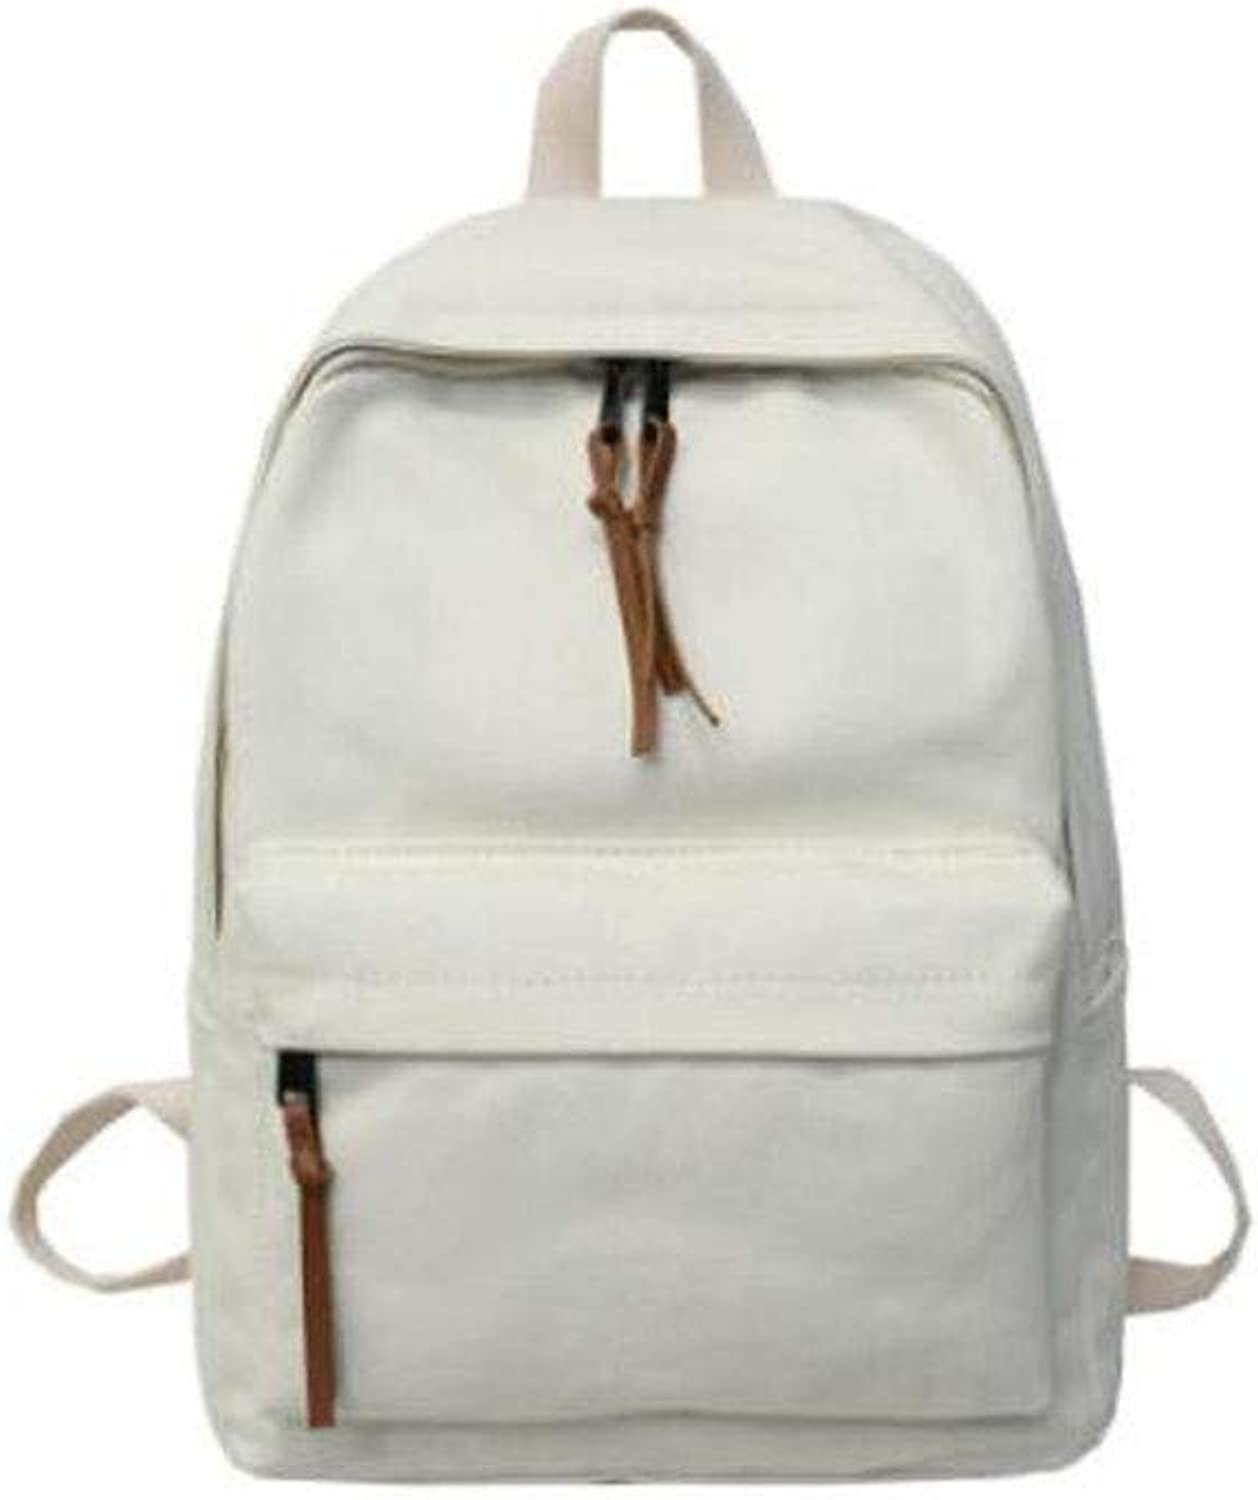 Casual Solid color Simple Canvas Women's Backpack, red (color   CreamyWhite)